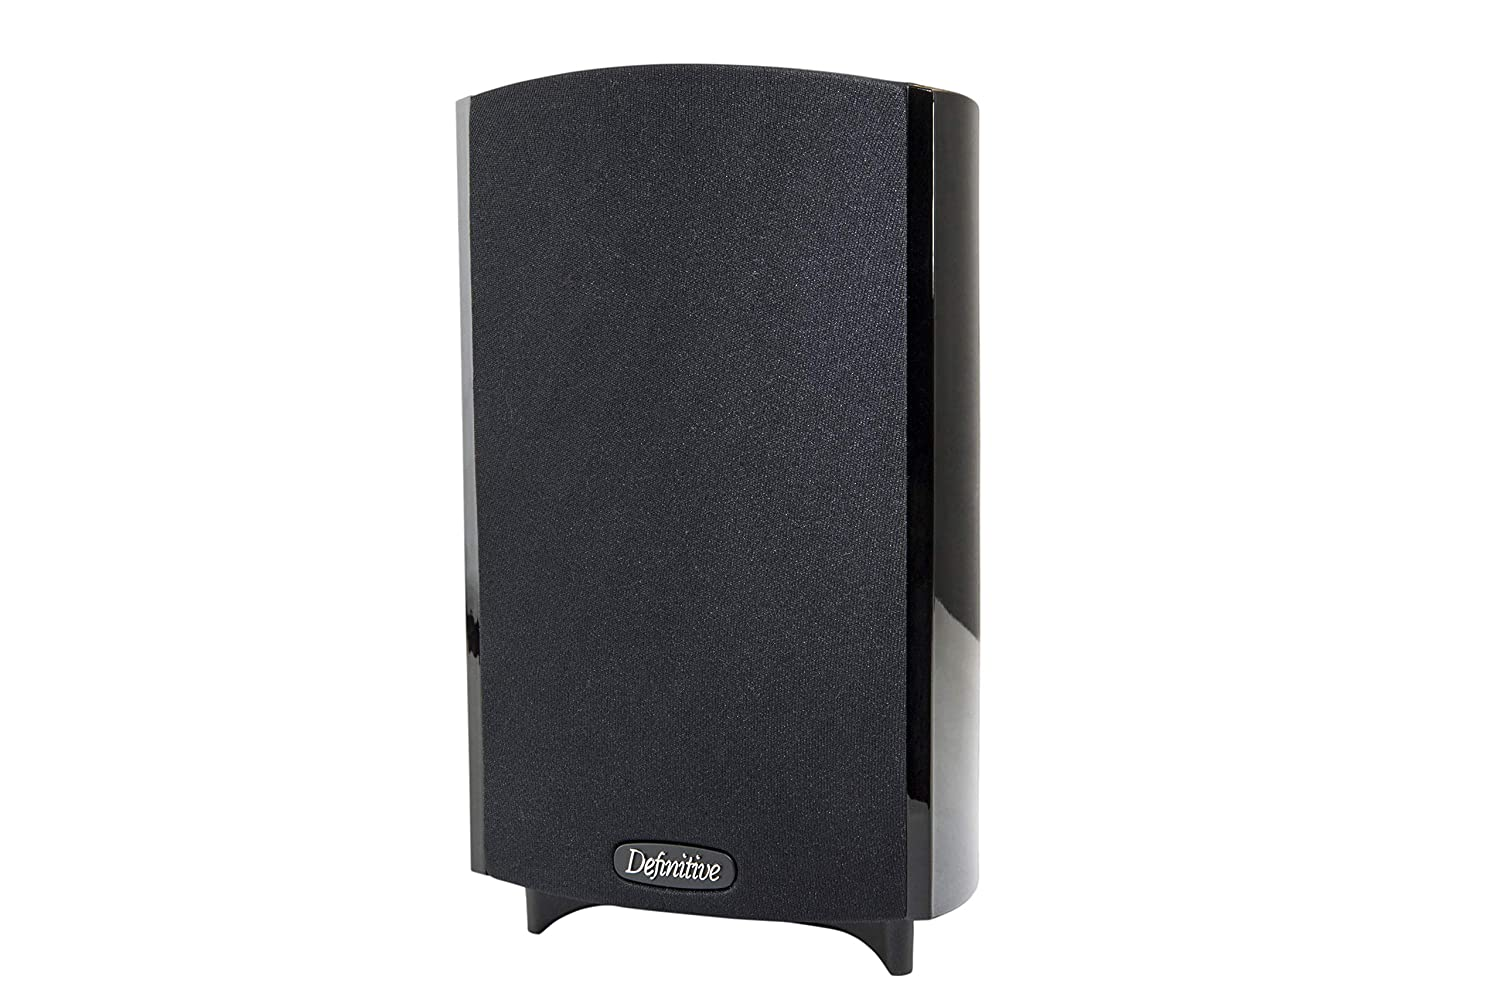 Single, Black Definitive Technology ProMonitor 800 Bookshelf Speaker